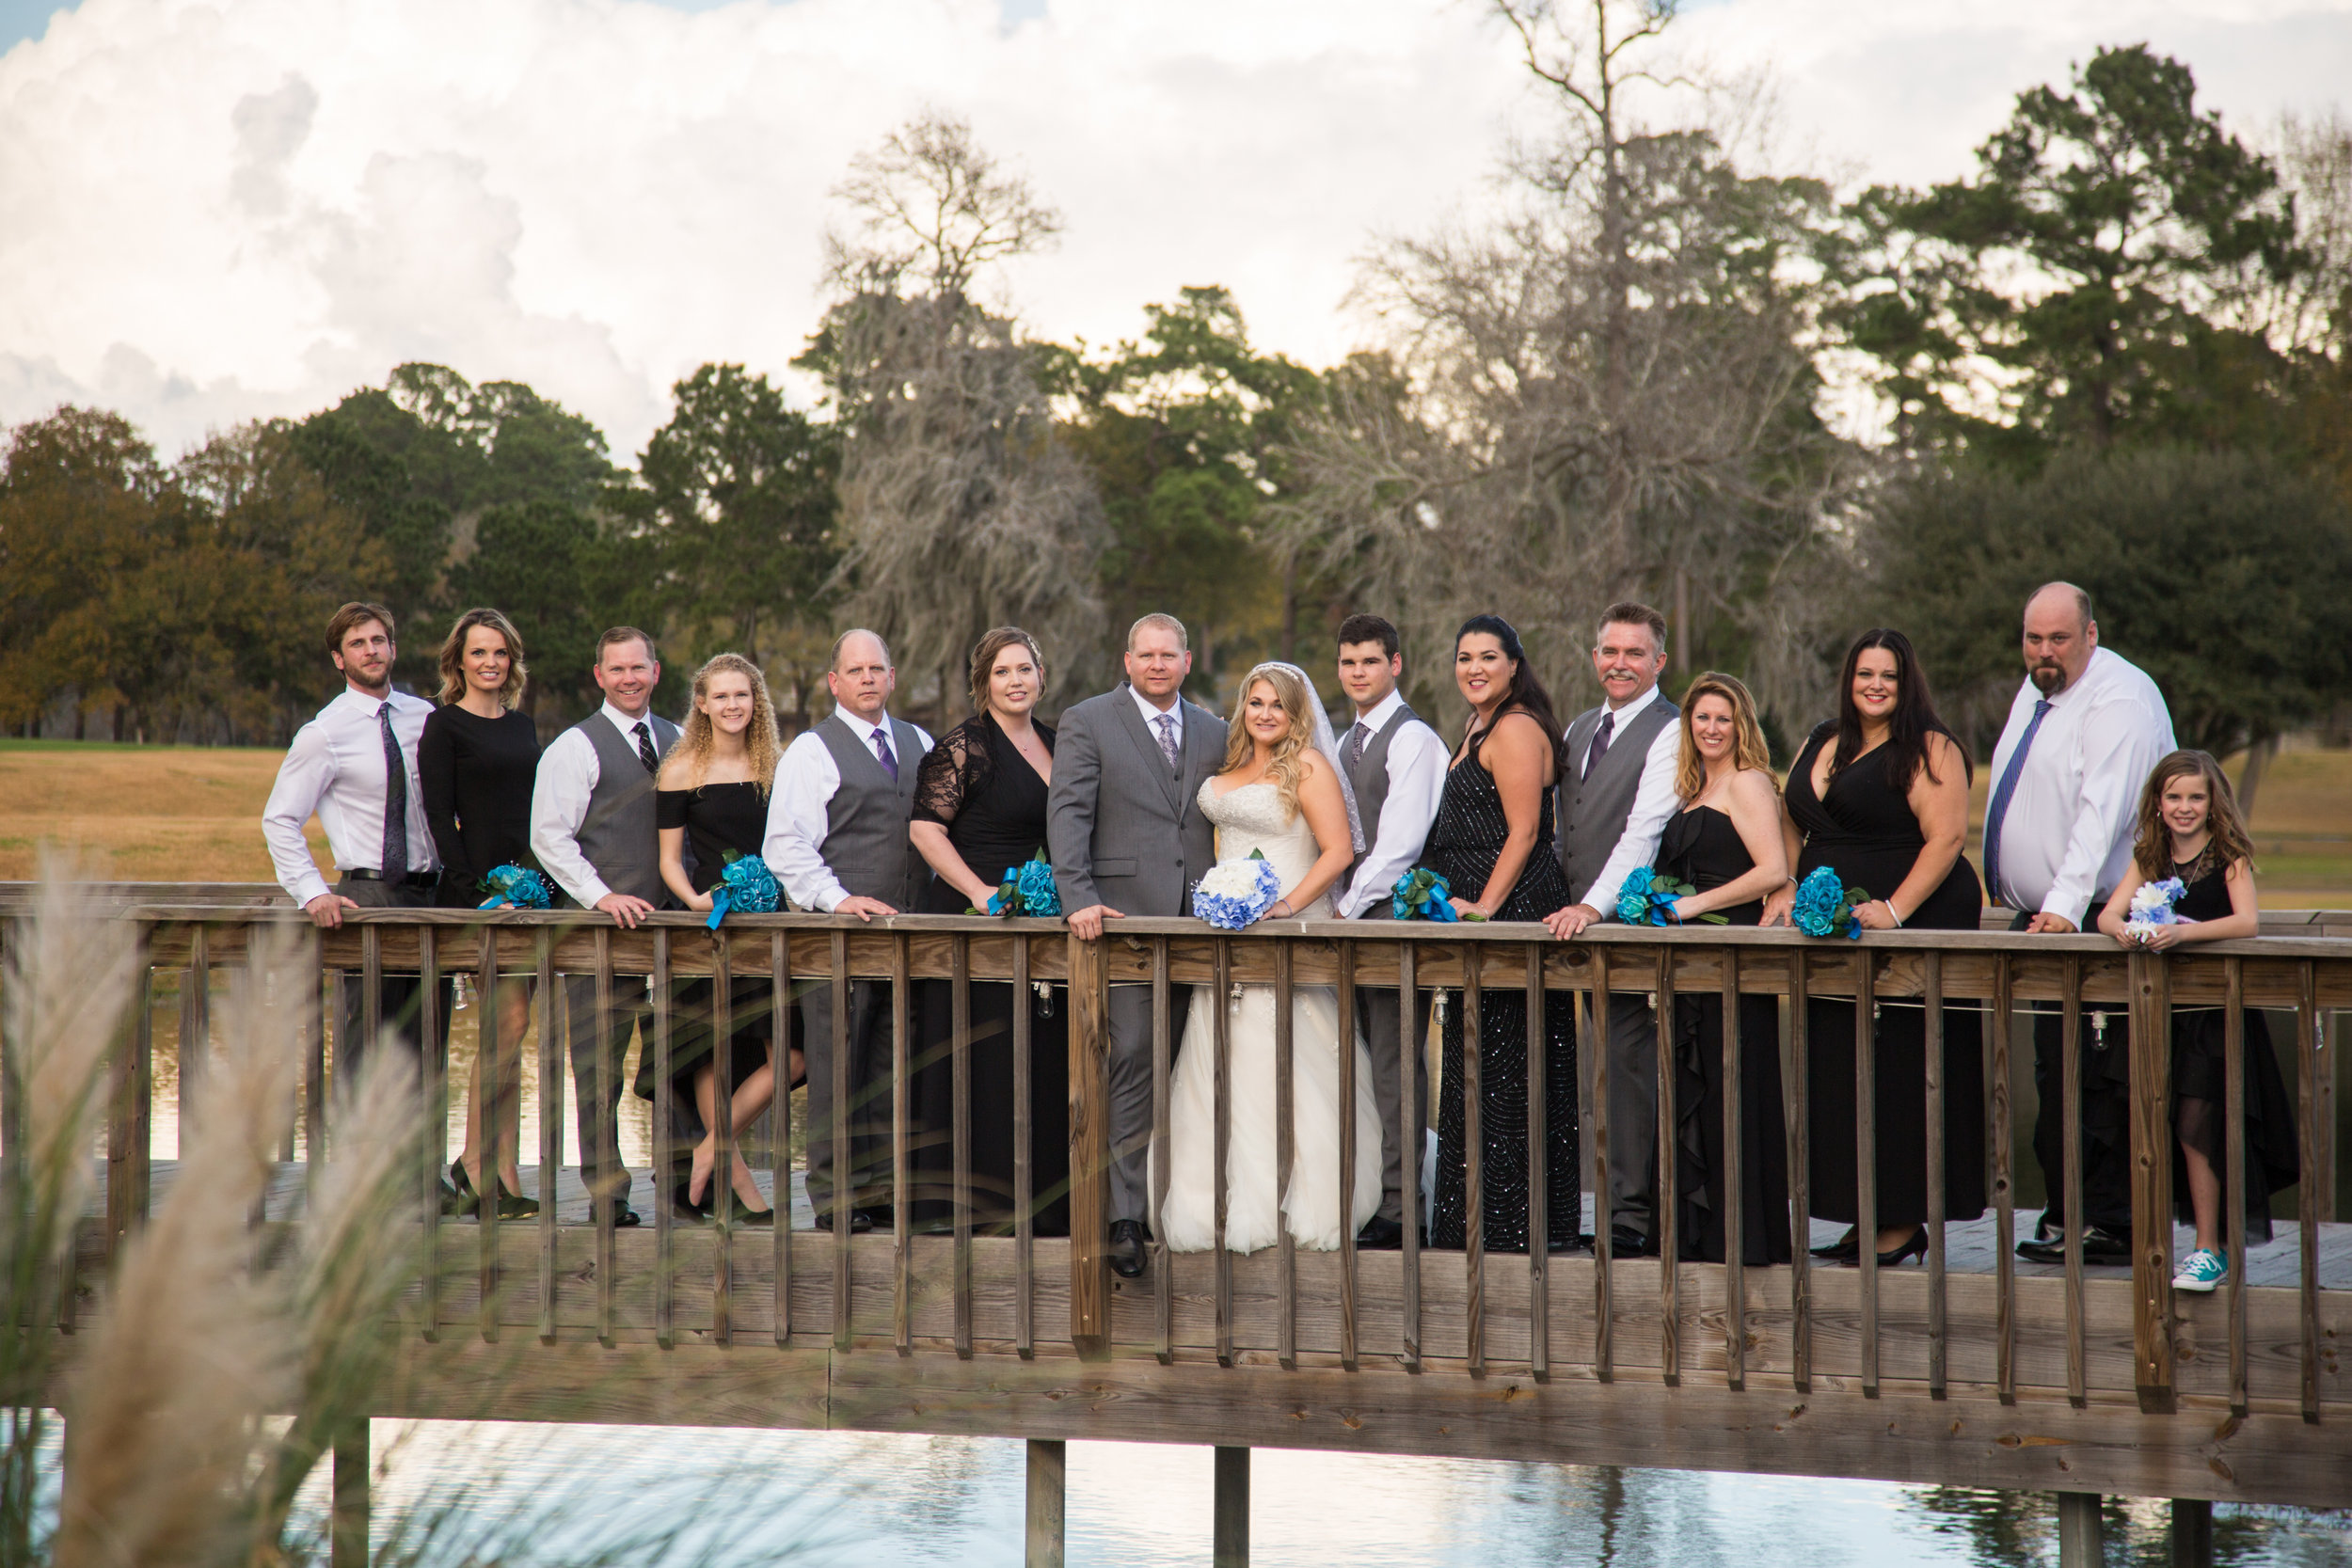 Group portrait of the wedding party on a bridge at sunset.